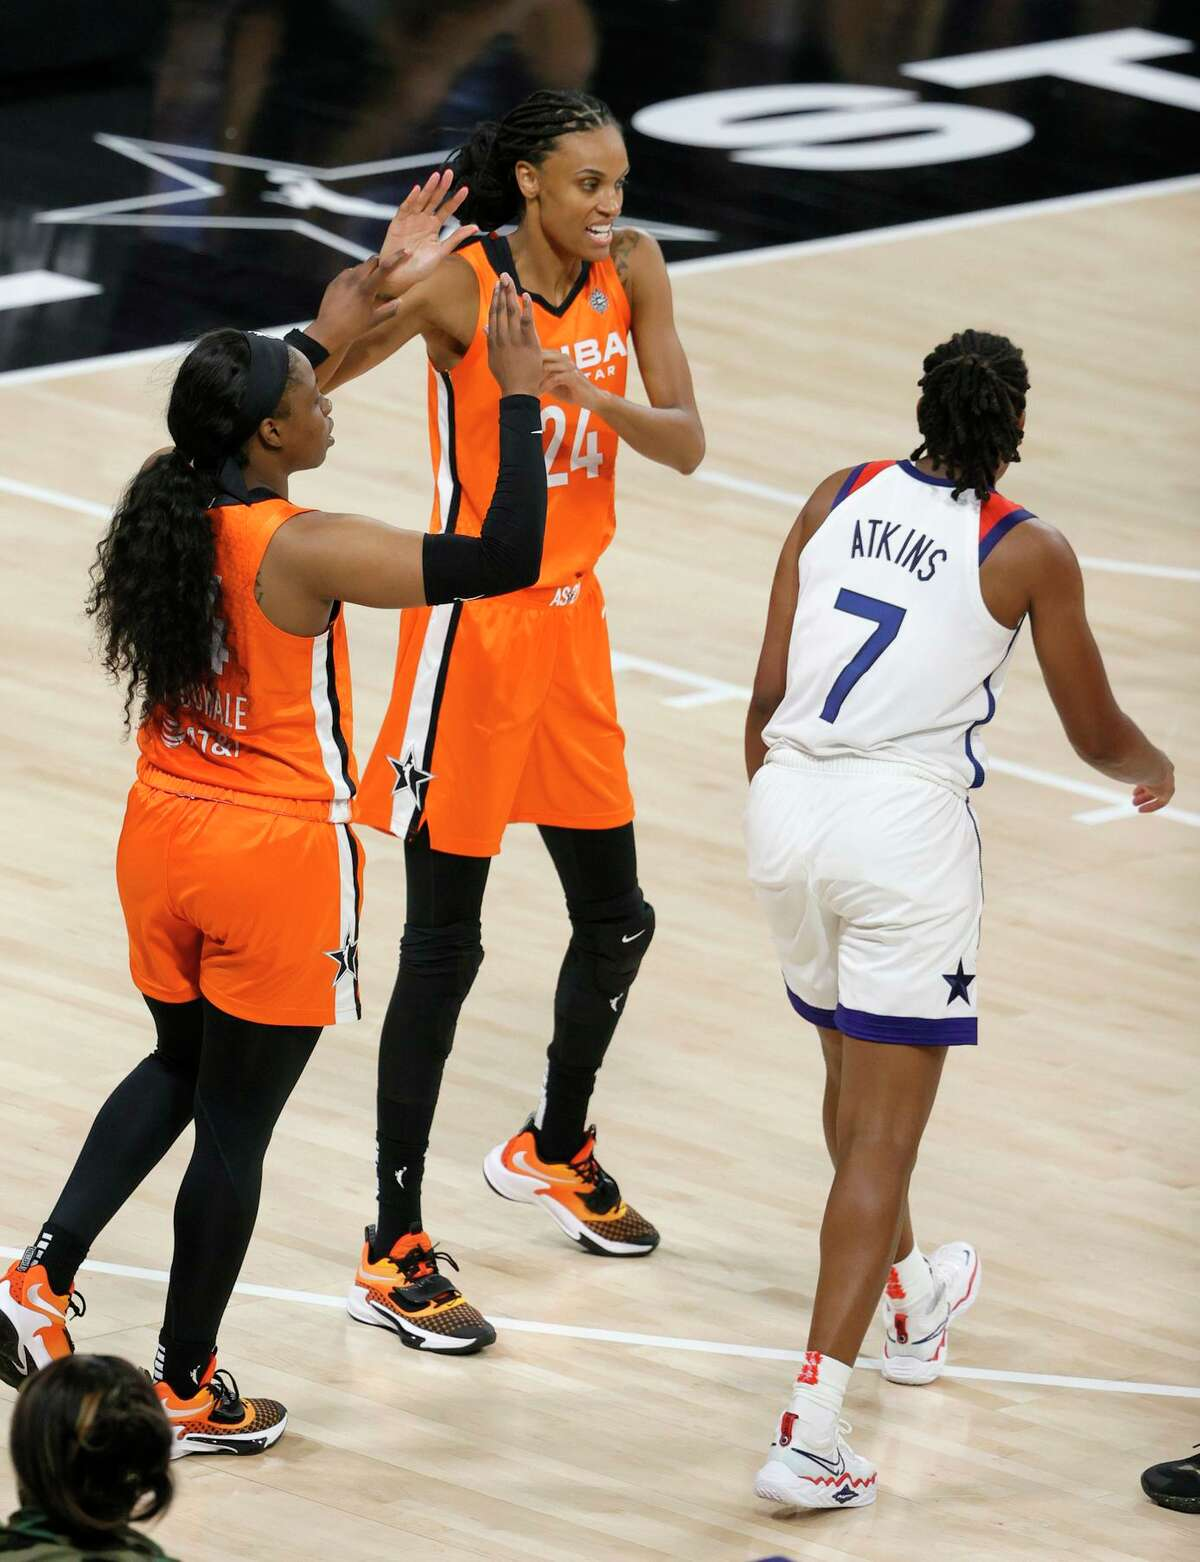 Arike Ogunbowale (left) and DeWanna Bonner of Team WNBA celebrate on the court after Ogunbowale hit a 3-pointer and was fouled by Ariel Atkins of the U.S. women's Olympic team.